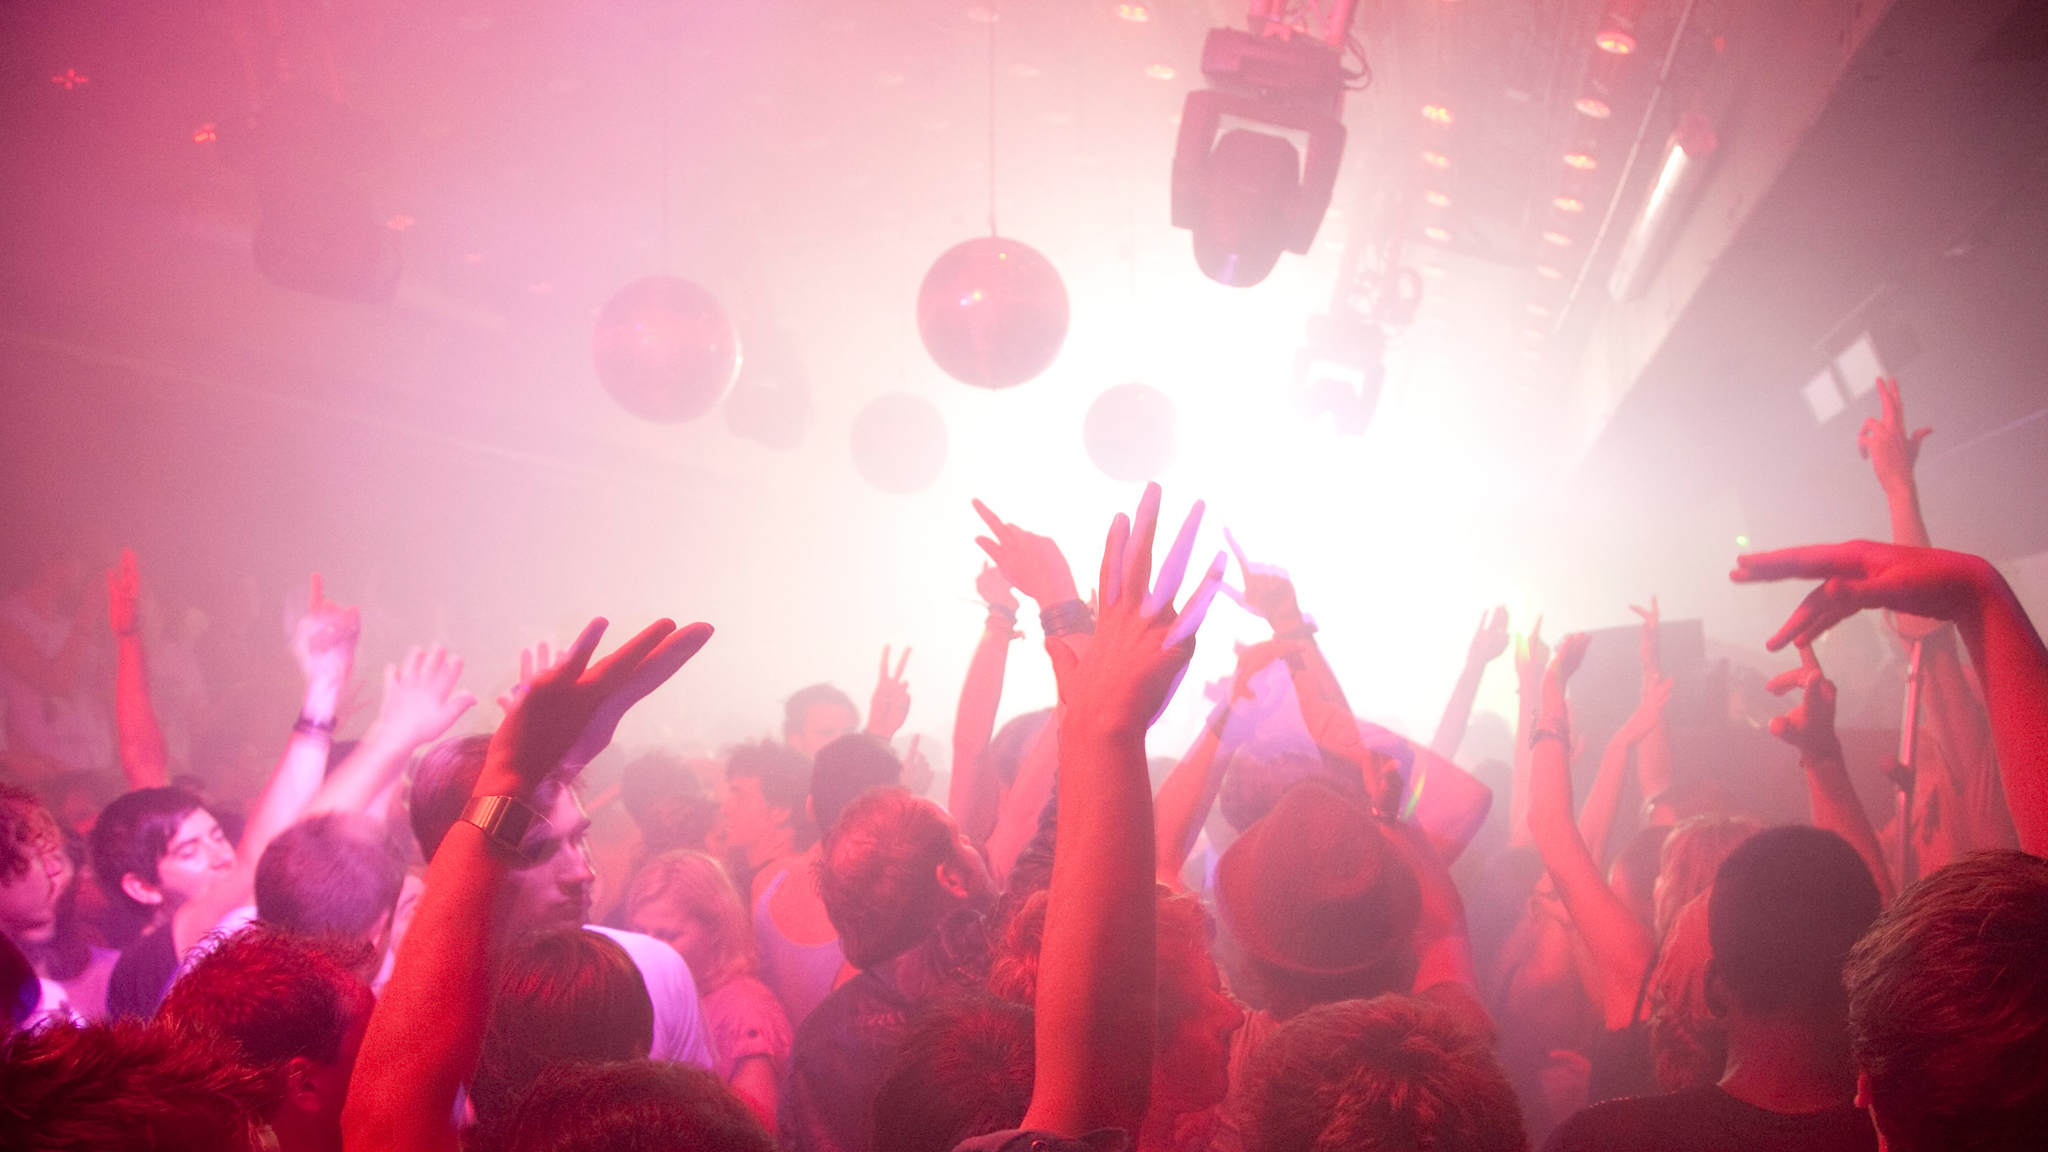 London's best clubs and nightlife